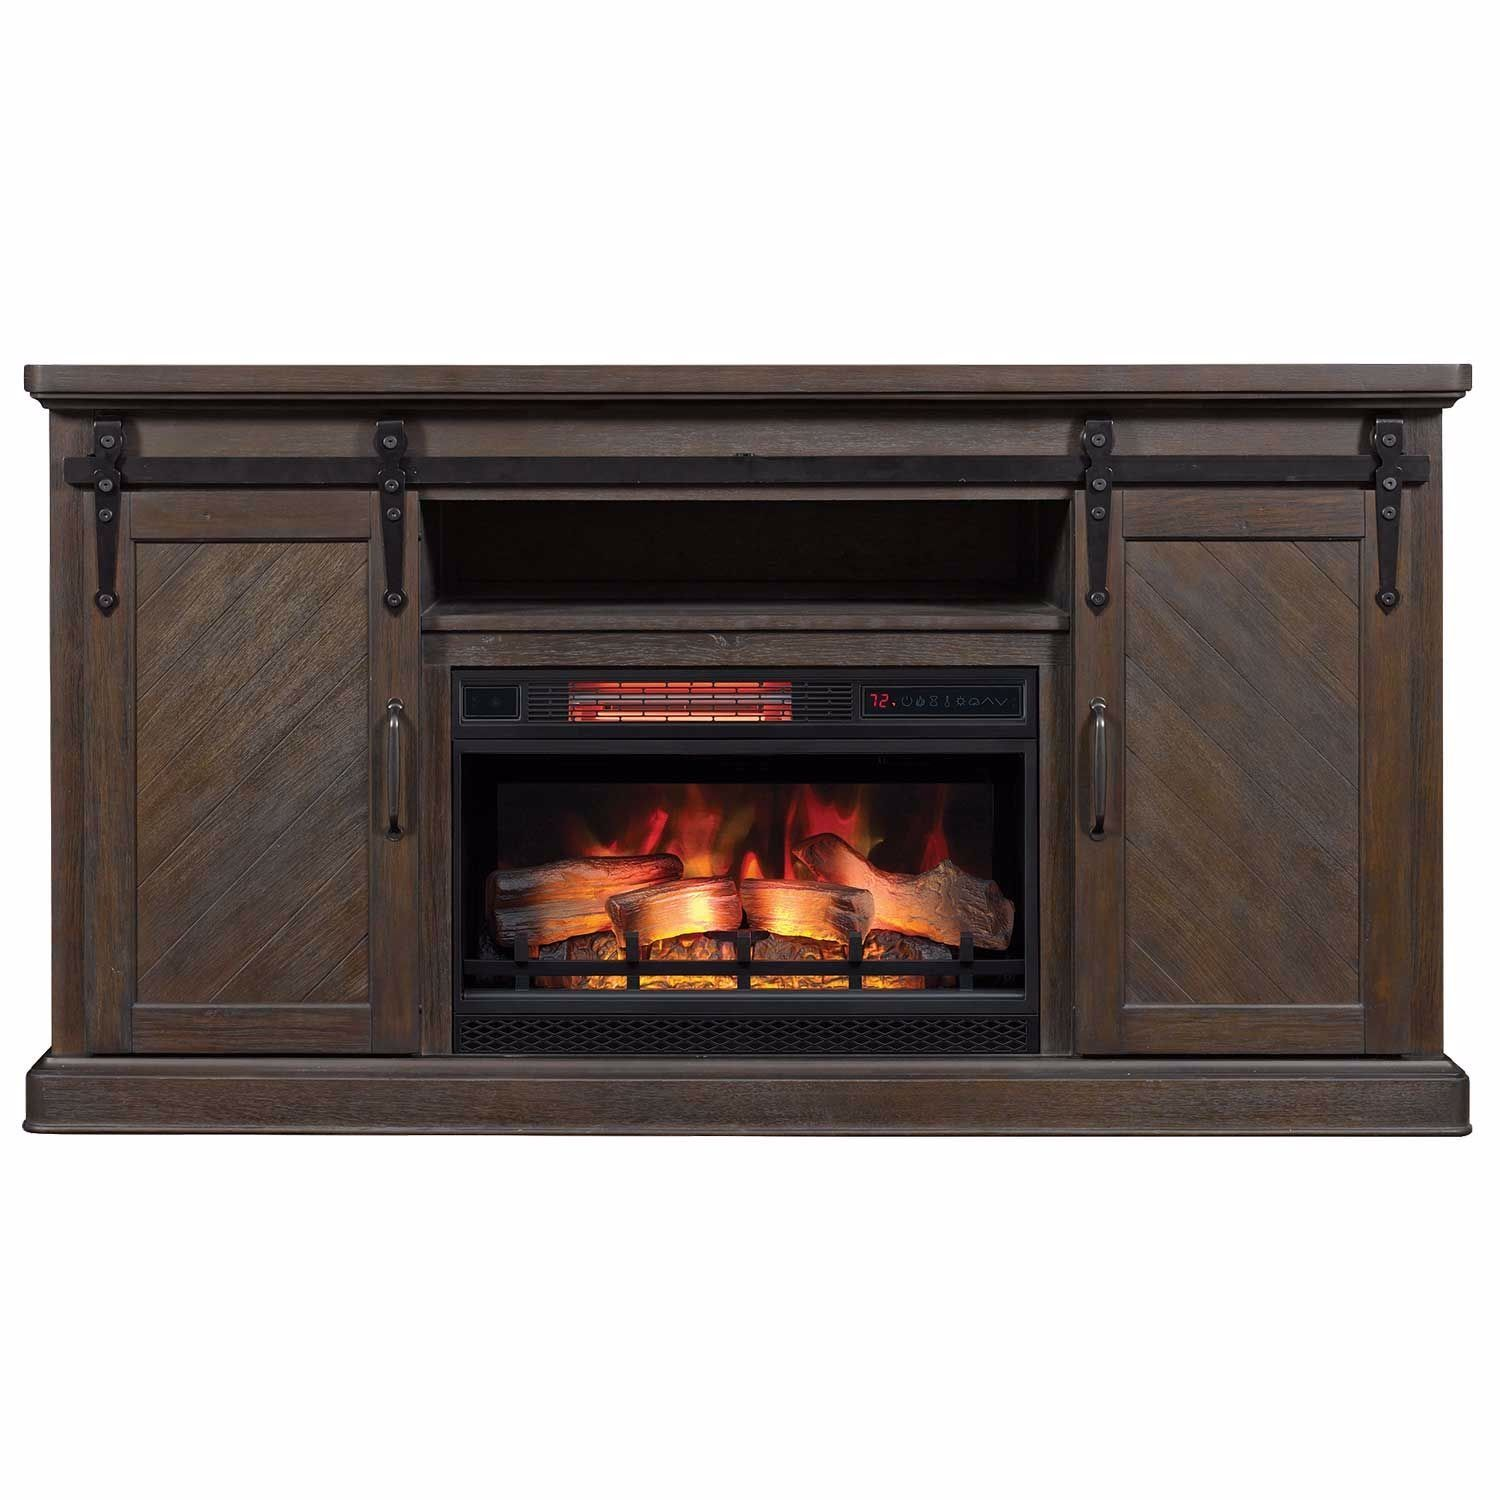 Southgate Media Fireplace in Coffee Finish